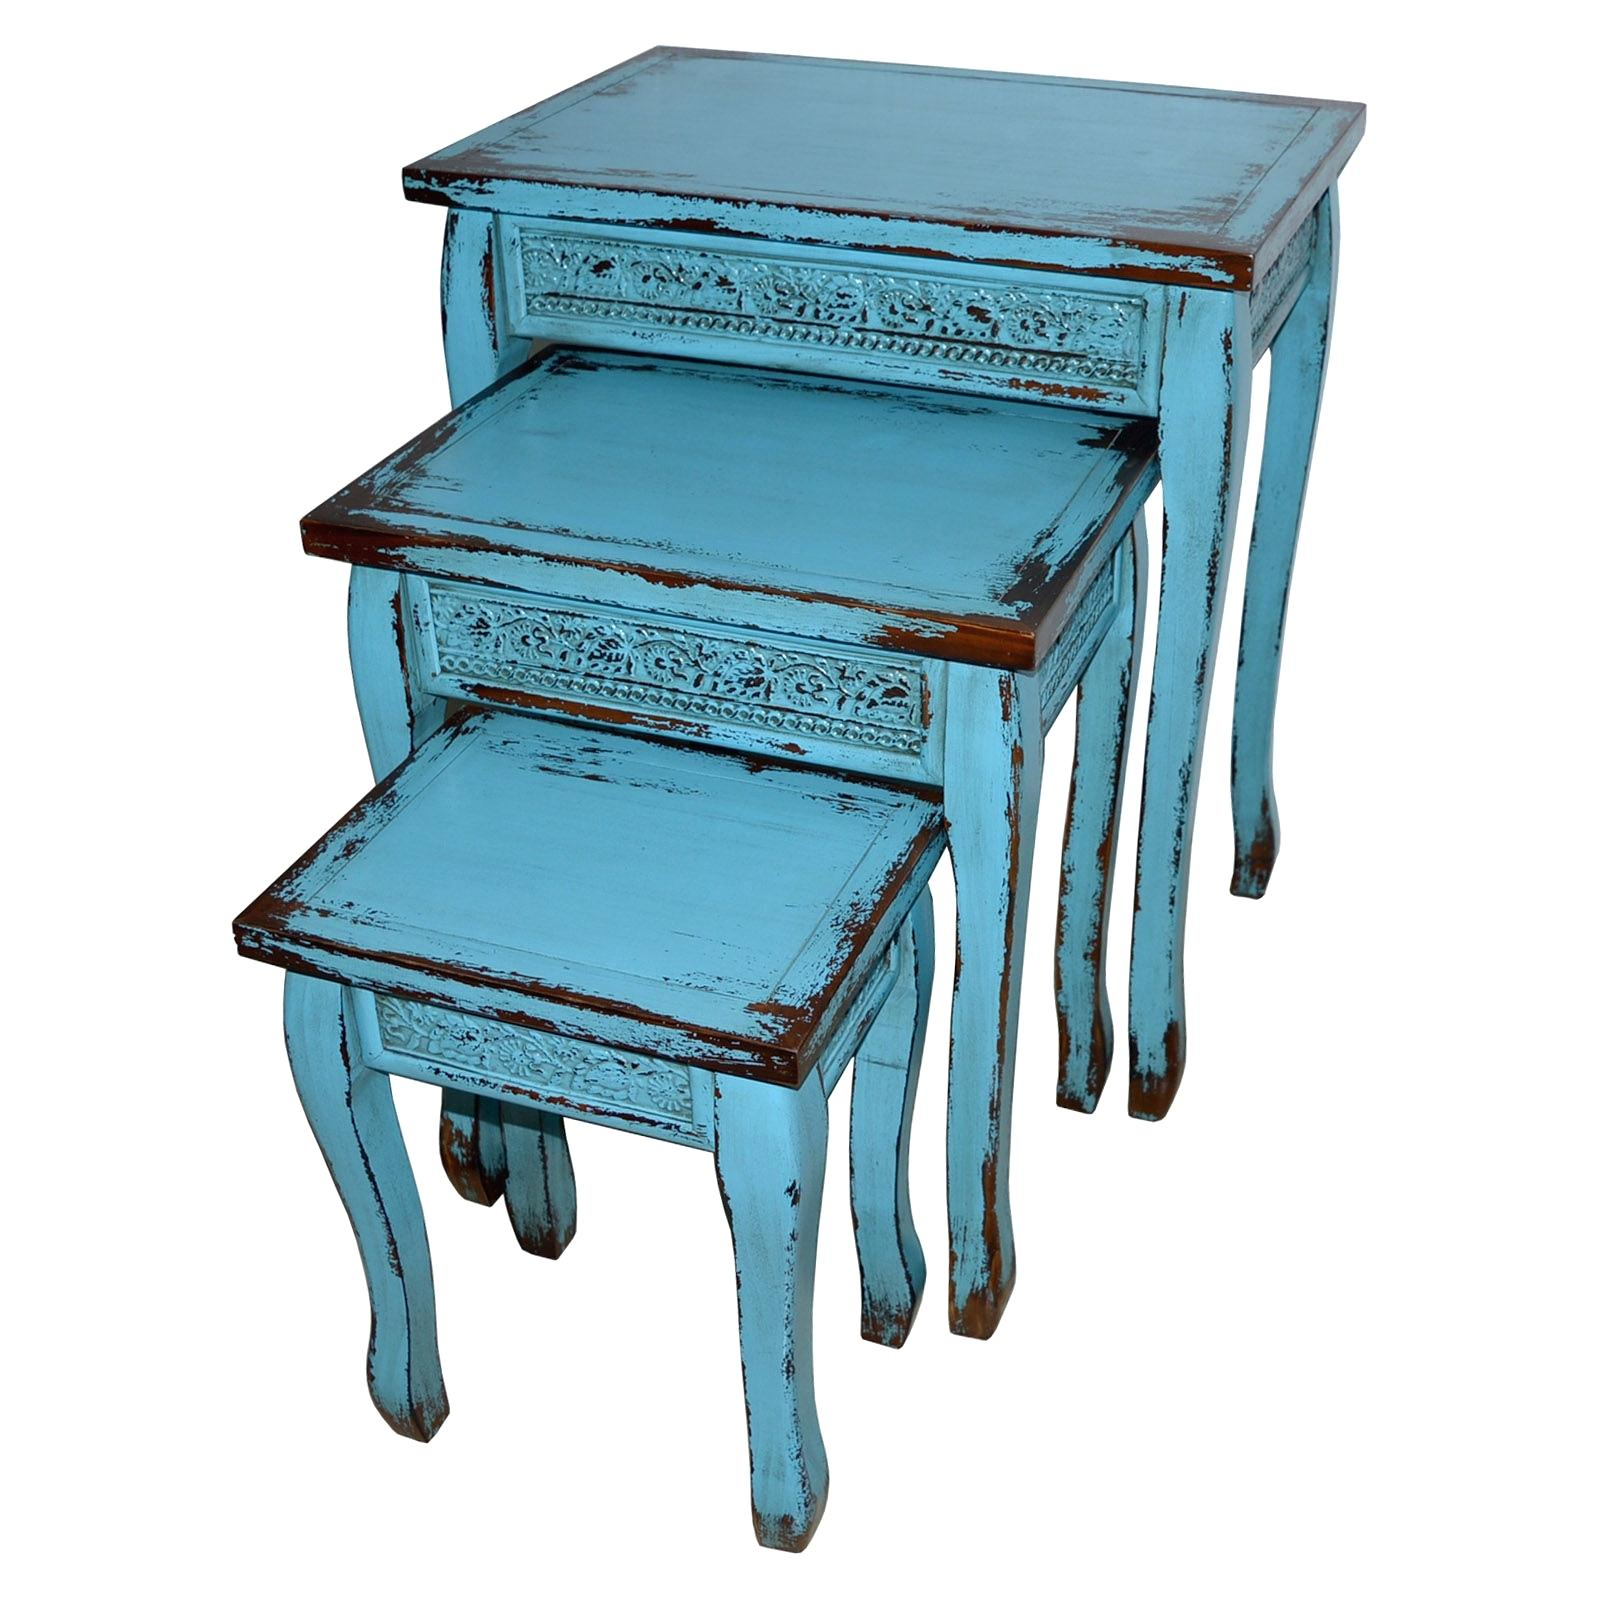 turquoise accent table drumfuse blue wooden distressed side large metal leather coffee screw feet set tables clear acrylic light wood end patio tiles portable rabat nic tablecloth